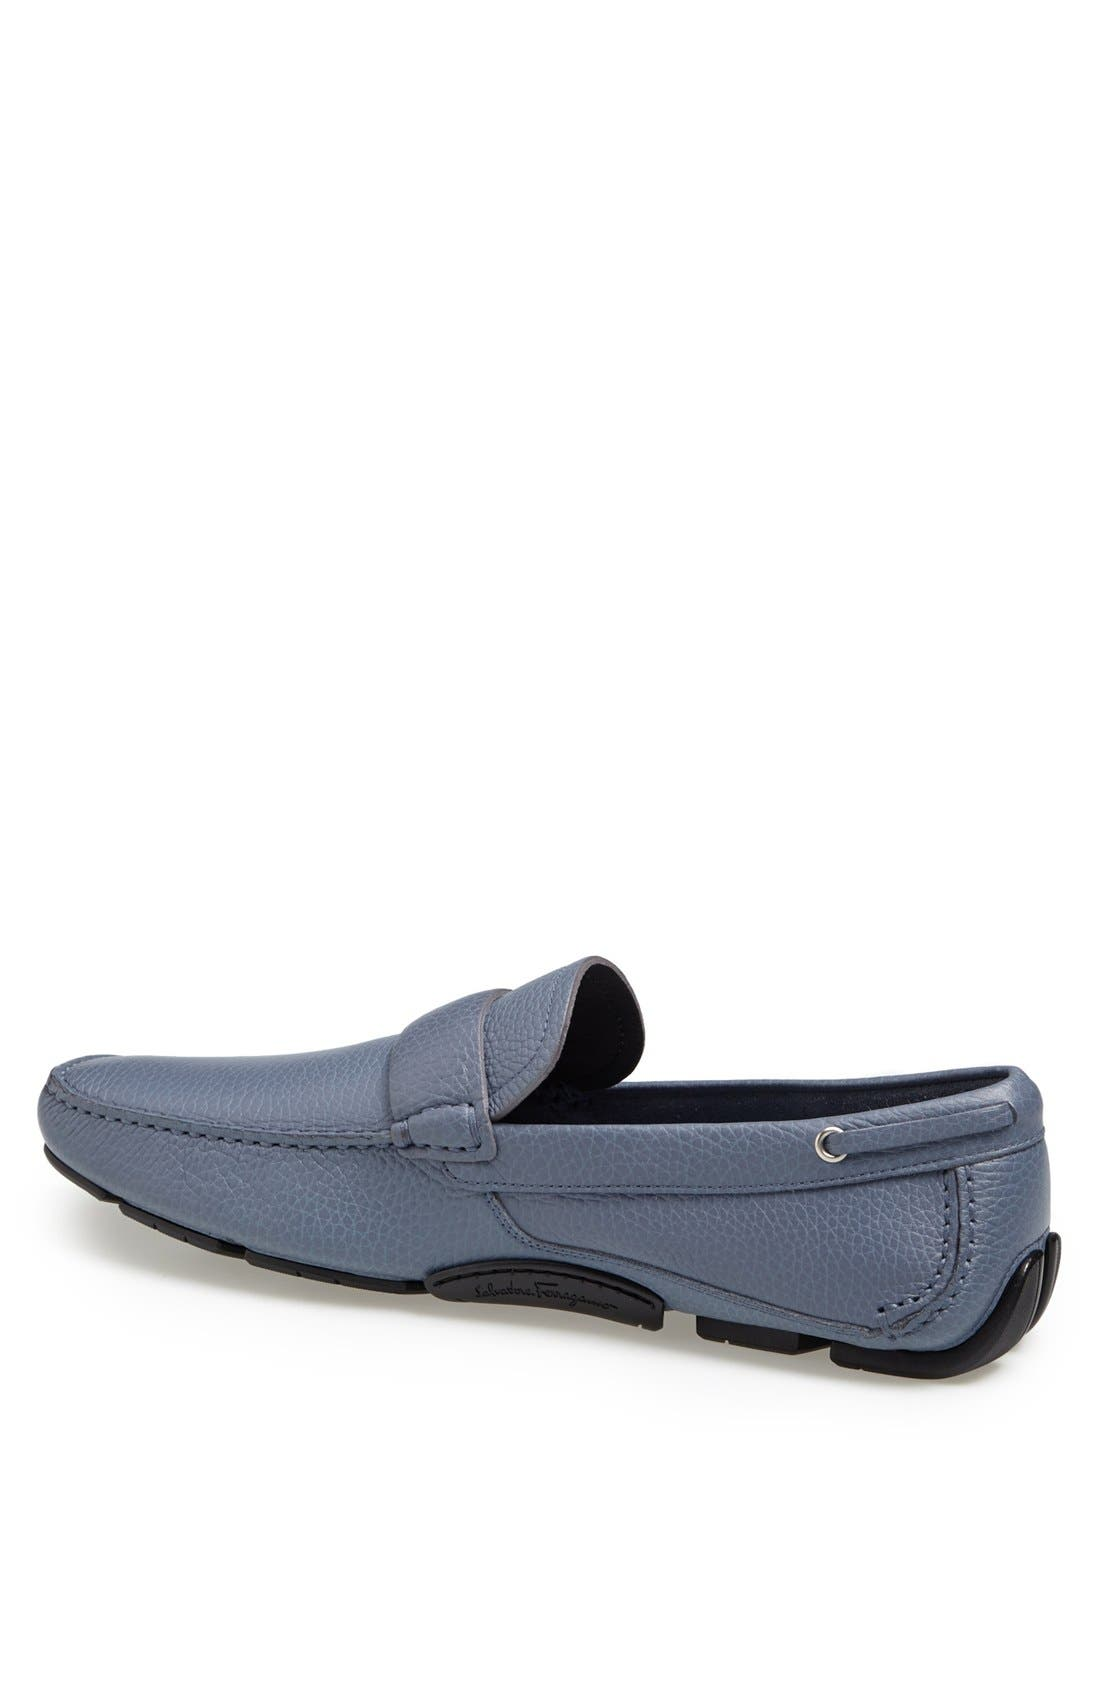 Alternate Image 2  - Salvatore Ferragamo 'Cabo 2' Driving Shoe